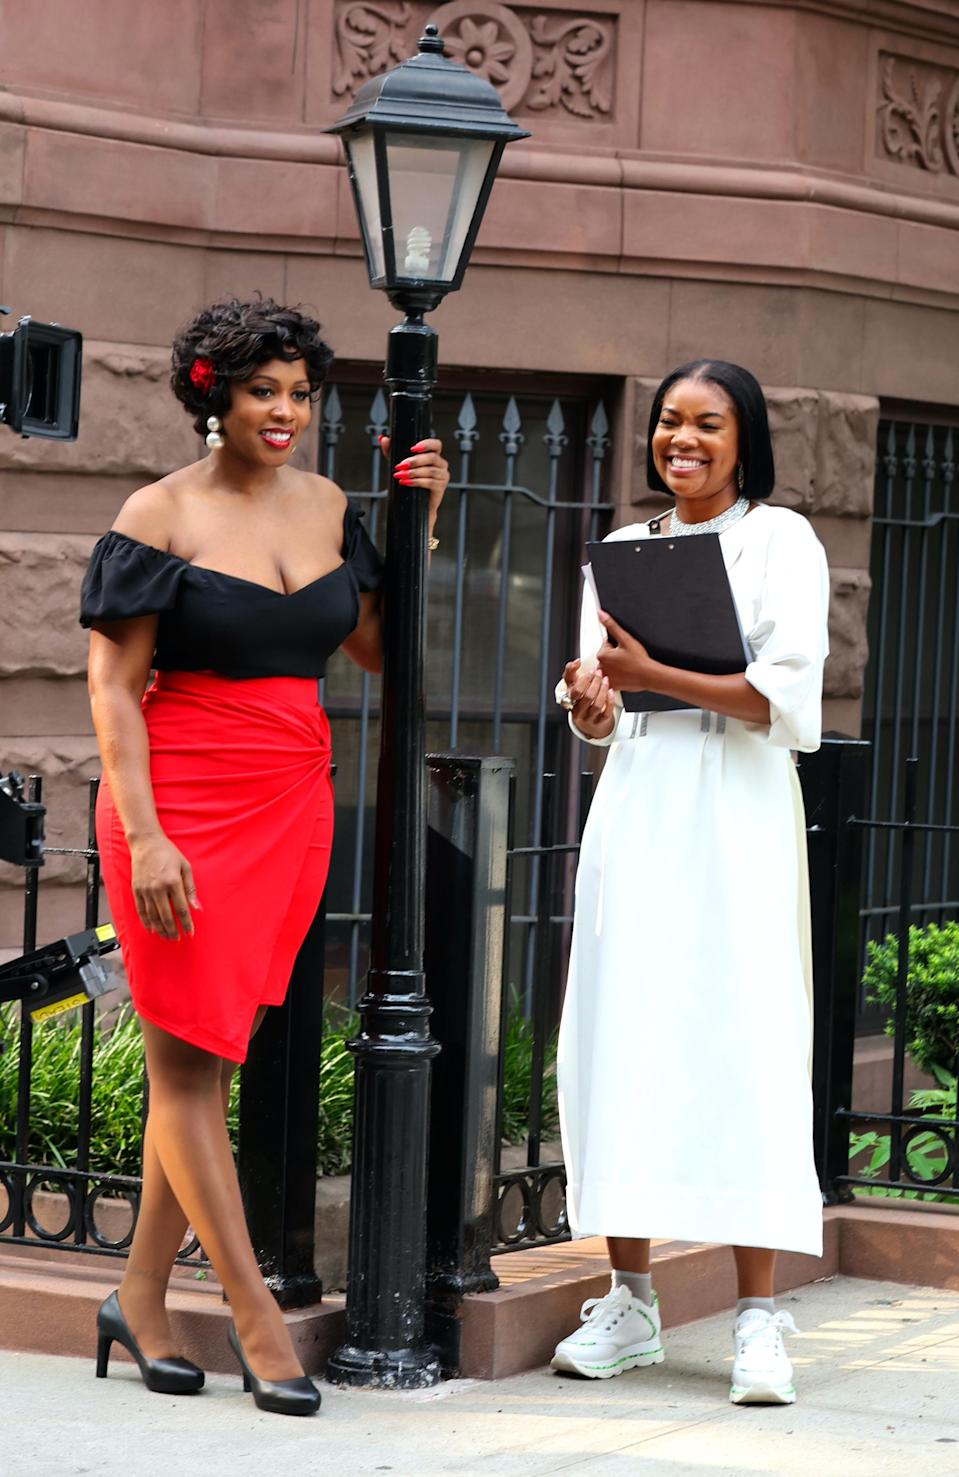 """Gabrielle Union and Remy Ma film """"The Perfect Find"""" in downtown Manhattan. - Credit: Jose Perez / SplashNews.com"""